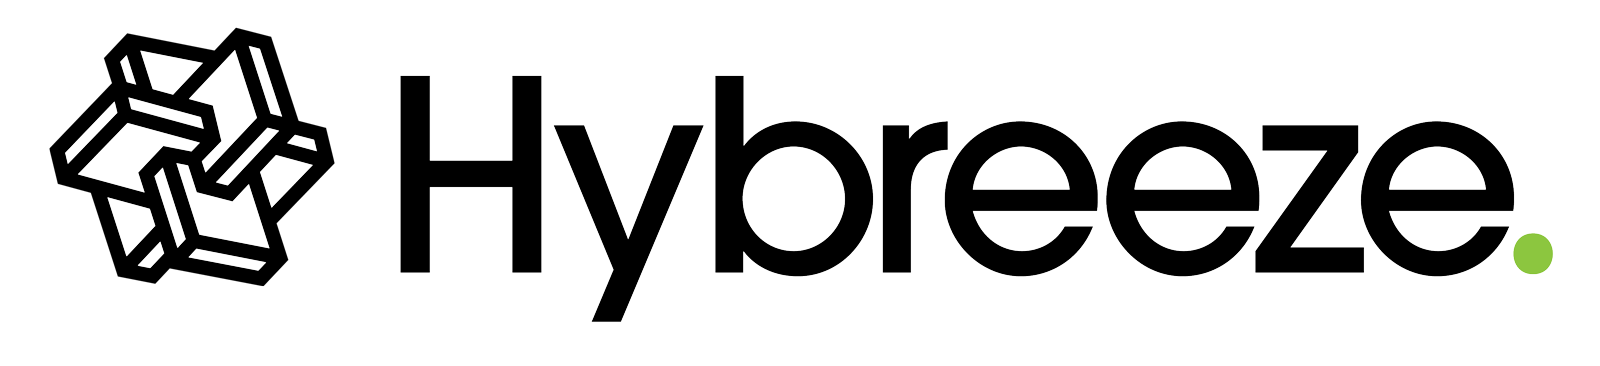 Hybreeze Furniture